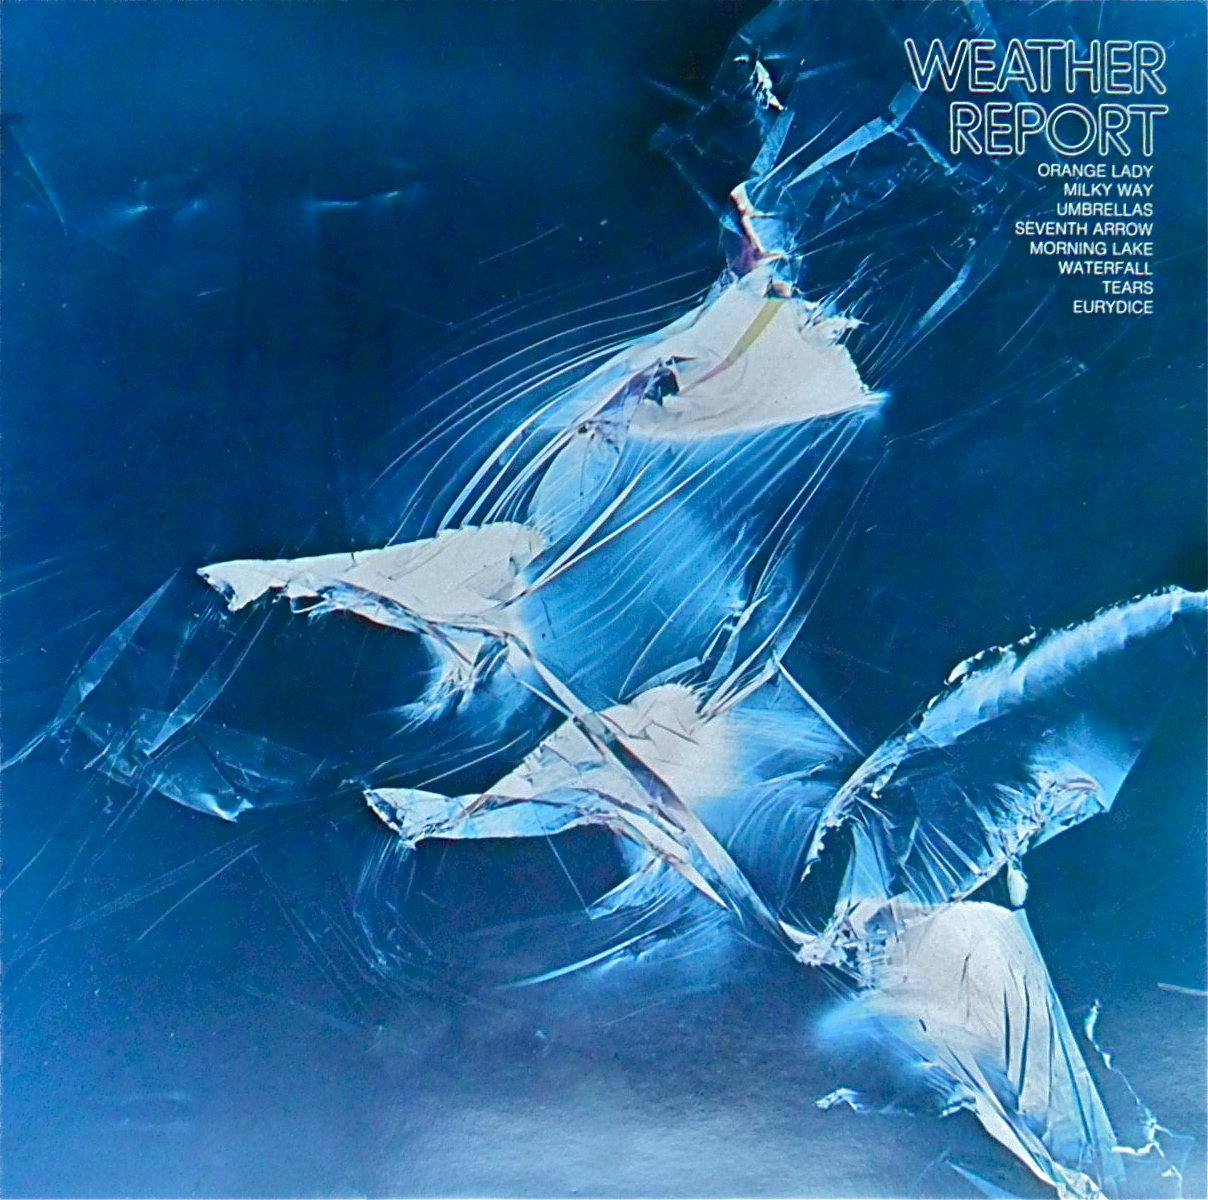 Weather Report (1971)